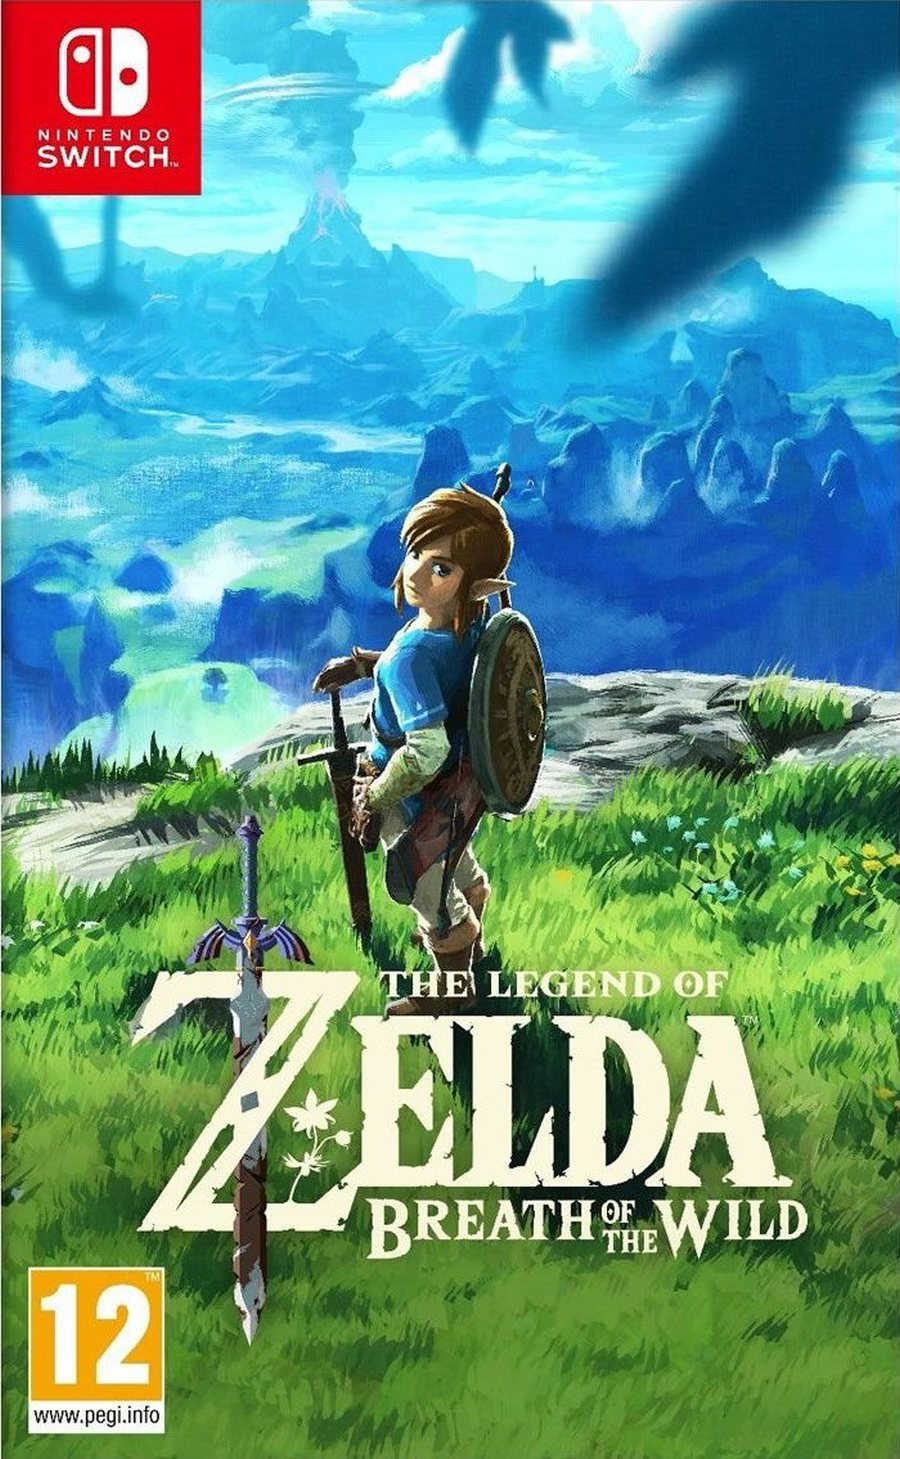 SWITCH The Legend of Zelda - Breath of the Wild - igrica za Nintendo Switch